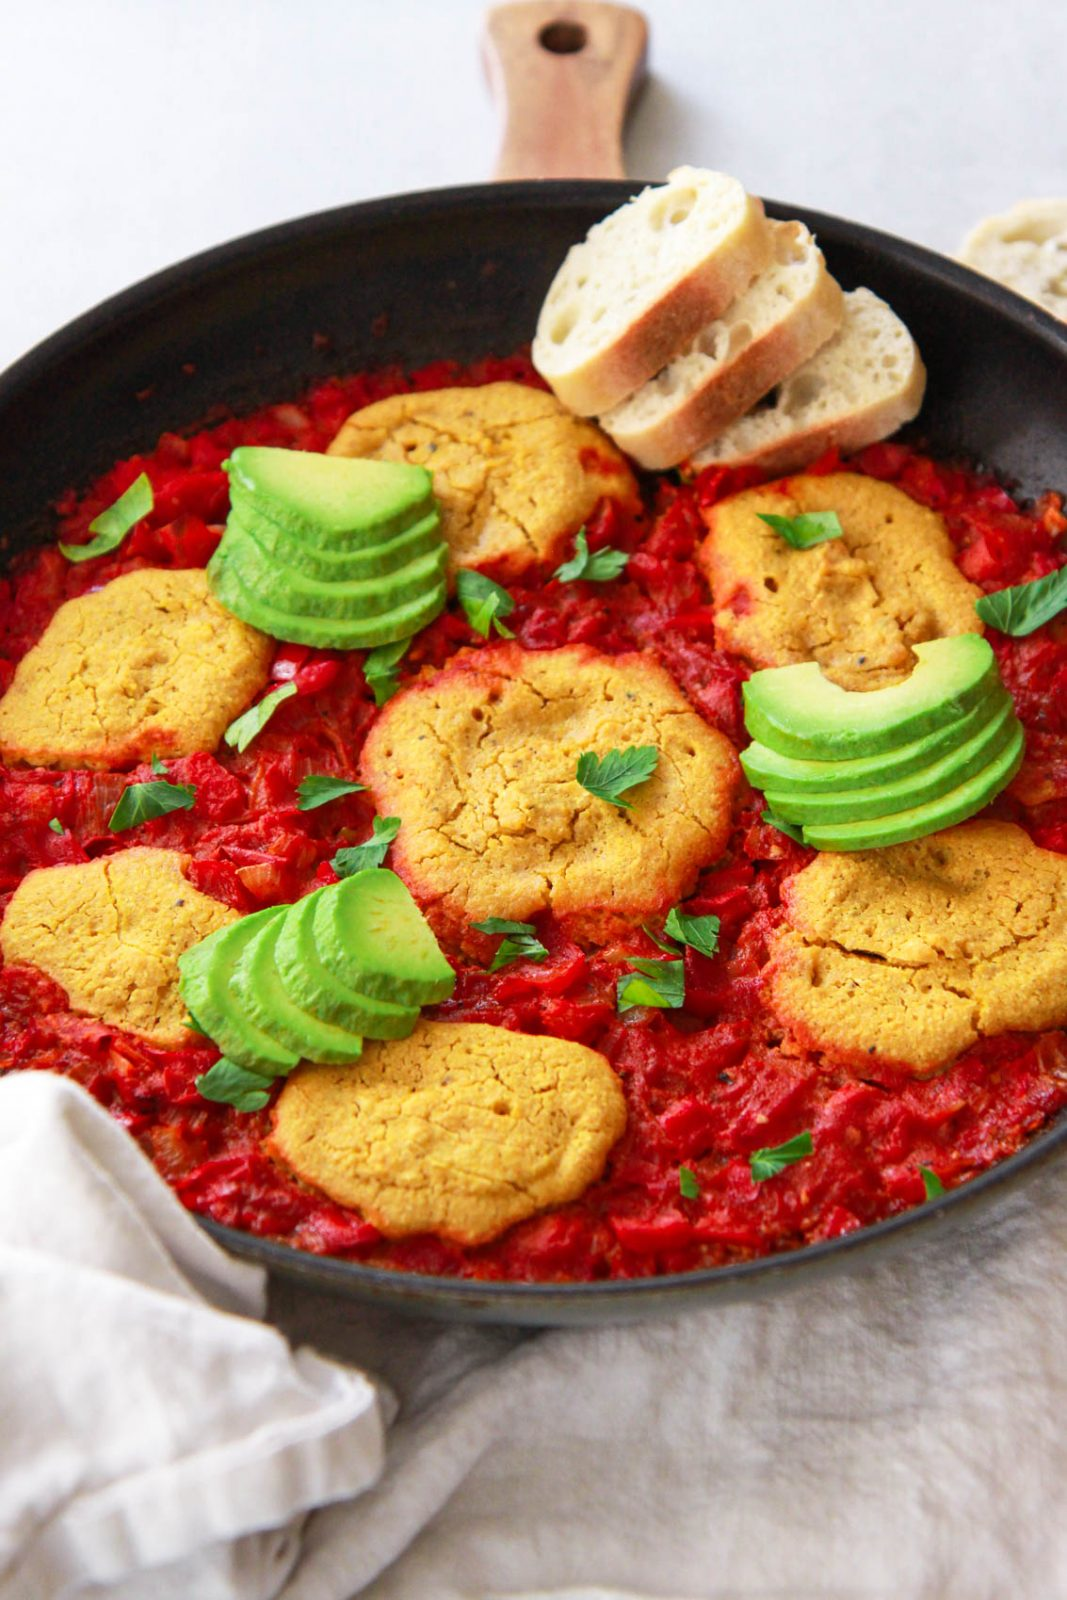 This vegan shakshuka make a delicious Middle Eastern breakfast. This Mediterranean brunch recipe is made plant based using chickpea based eggs baked in a tomato and red pepper sauce.